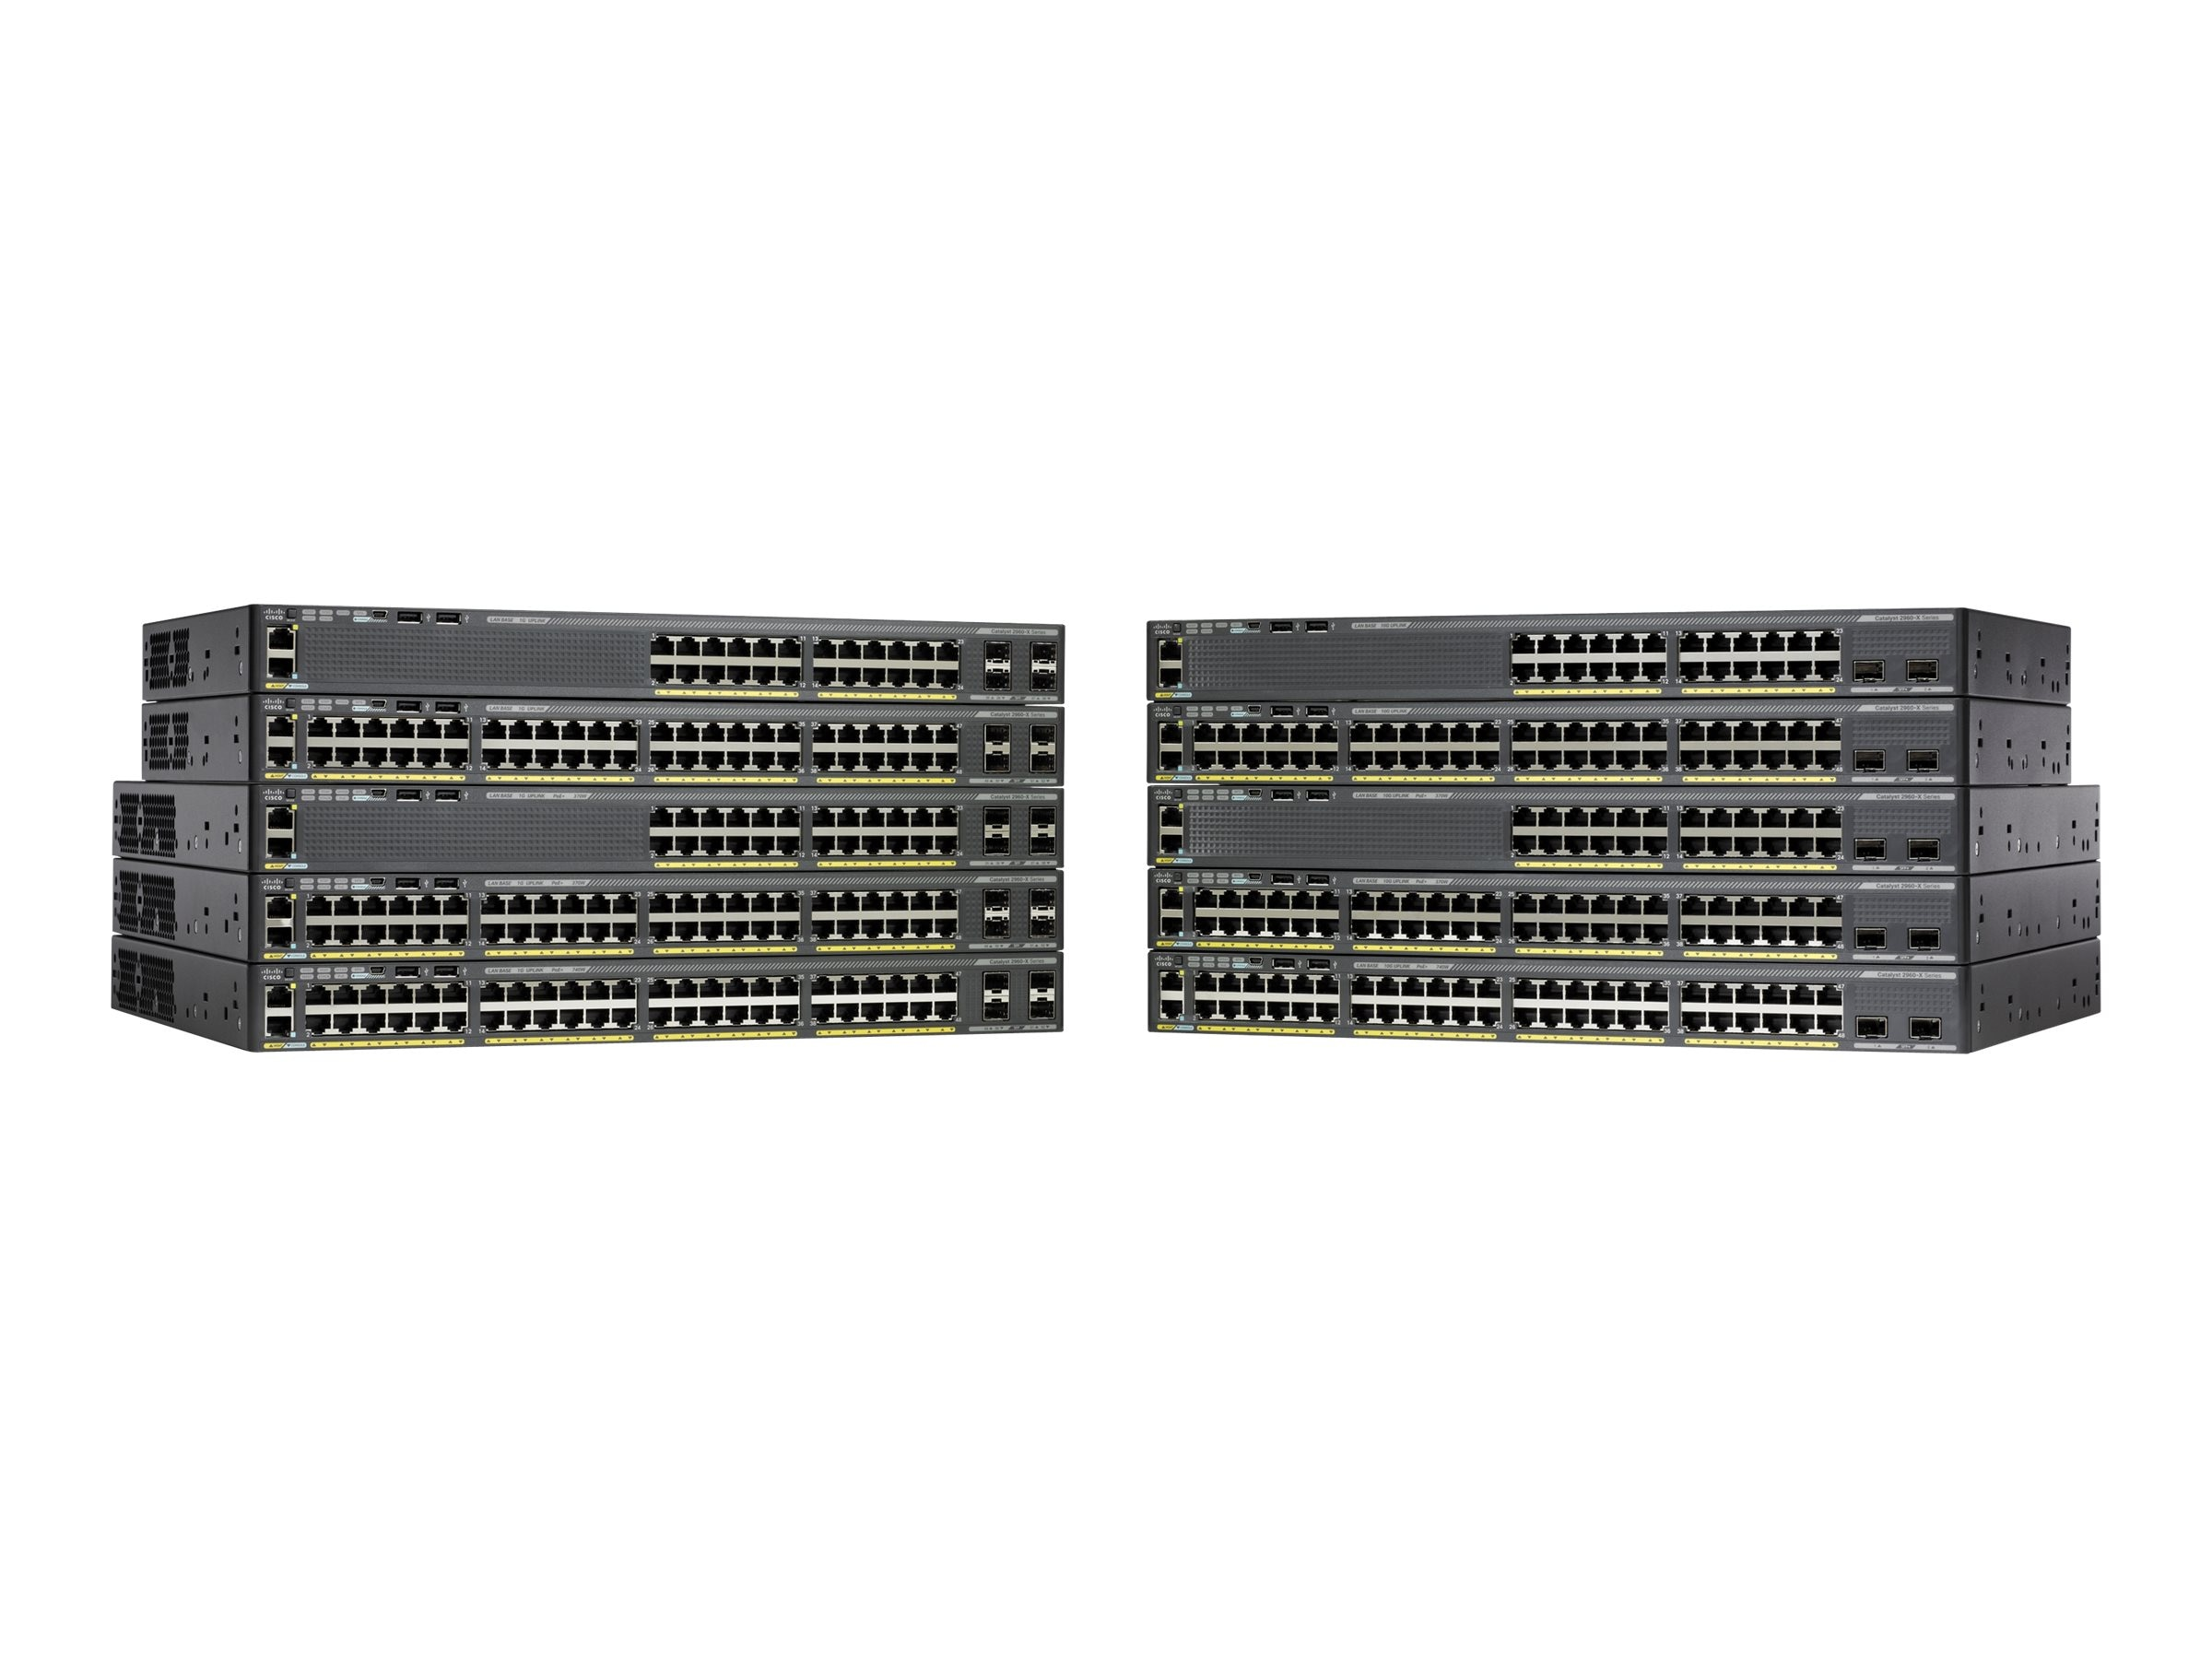 Cisco Catalyst 2960-X 48  GIGE POE 370W 4X SFP, WS-C2960X-48LPS-L, 15977228, Network Switches